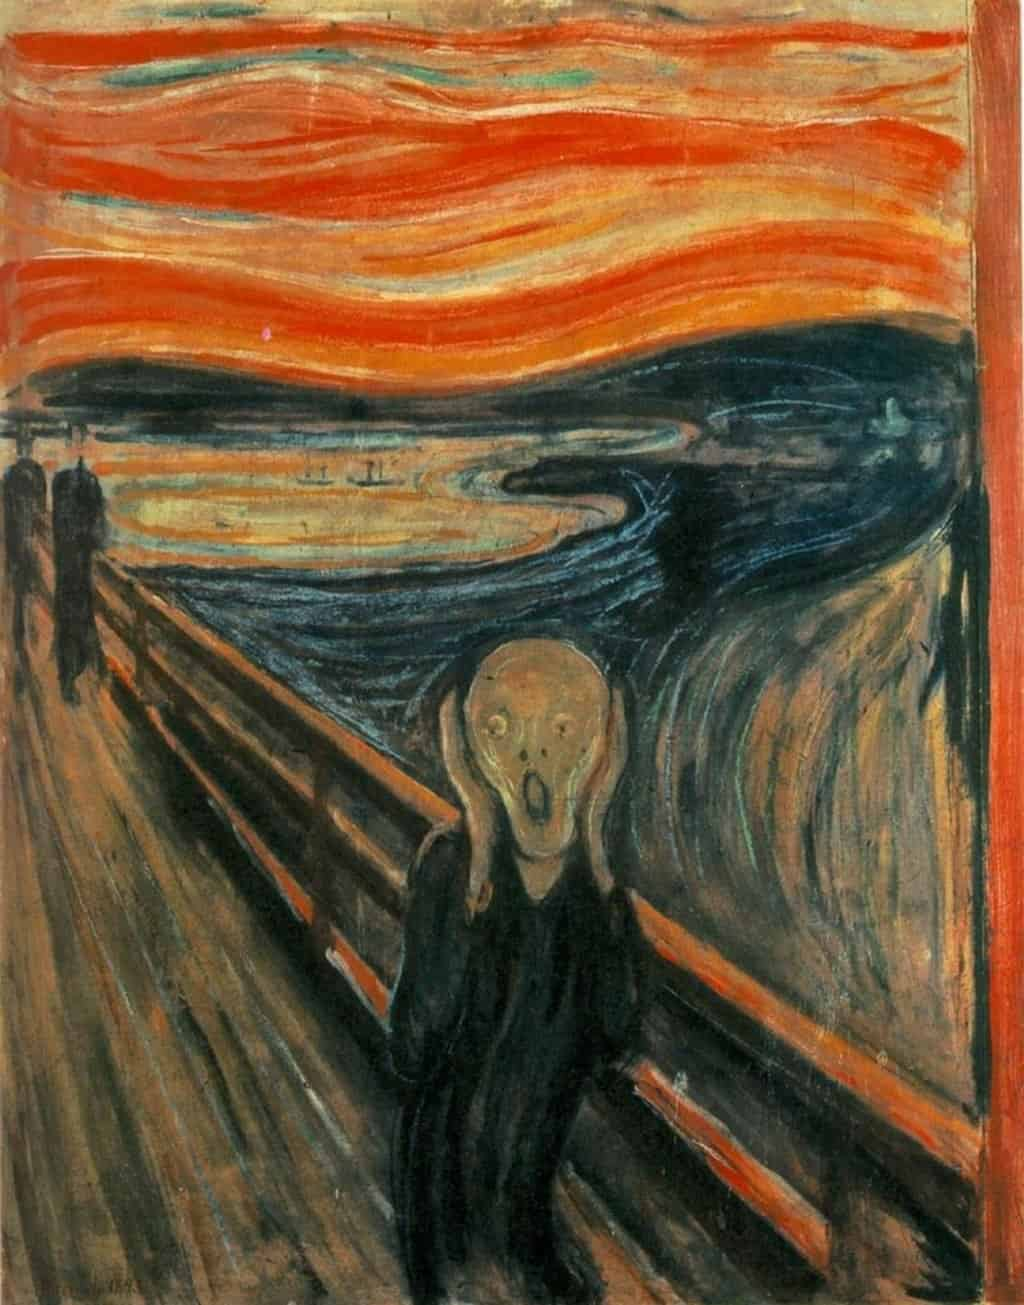 Edvard Munch The Scream Painting in Oslo Norway